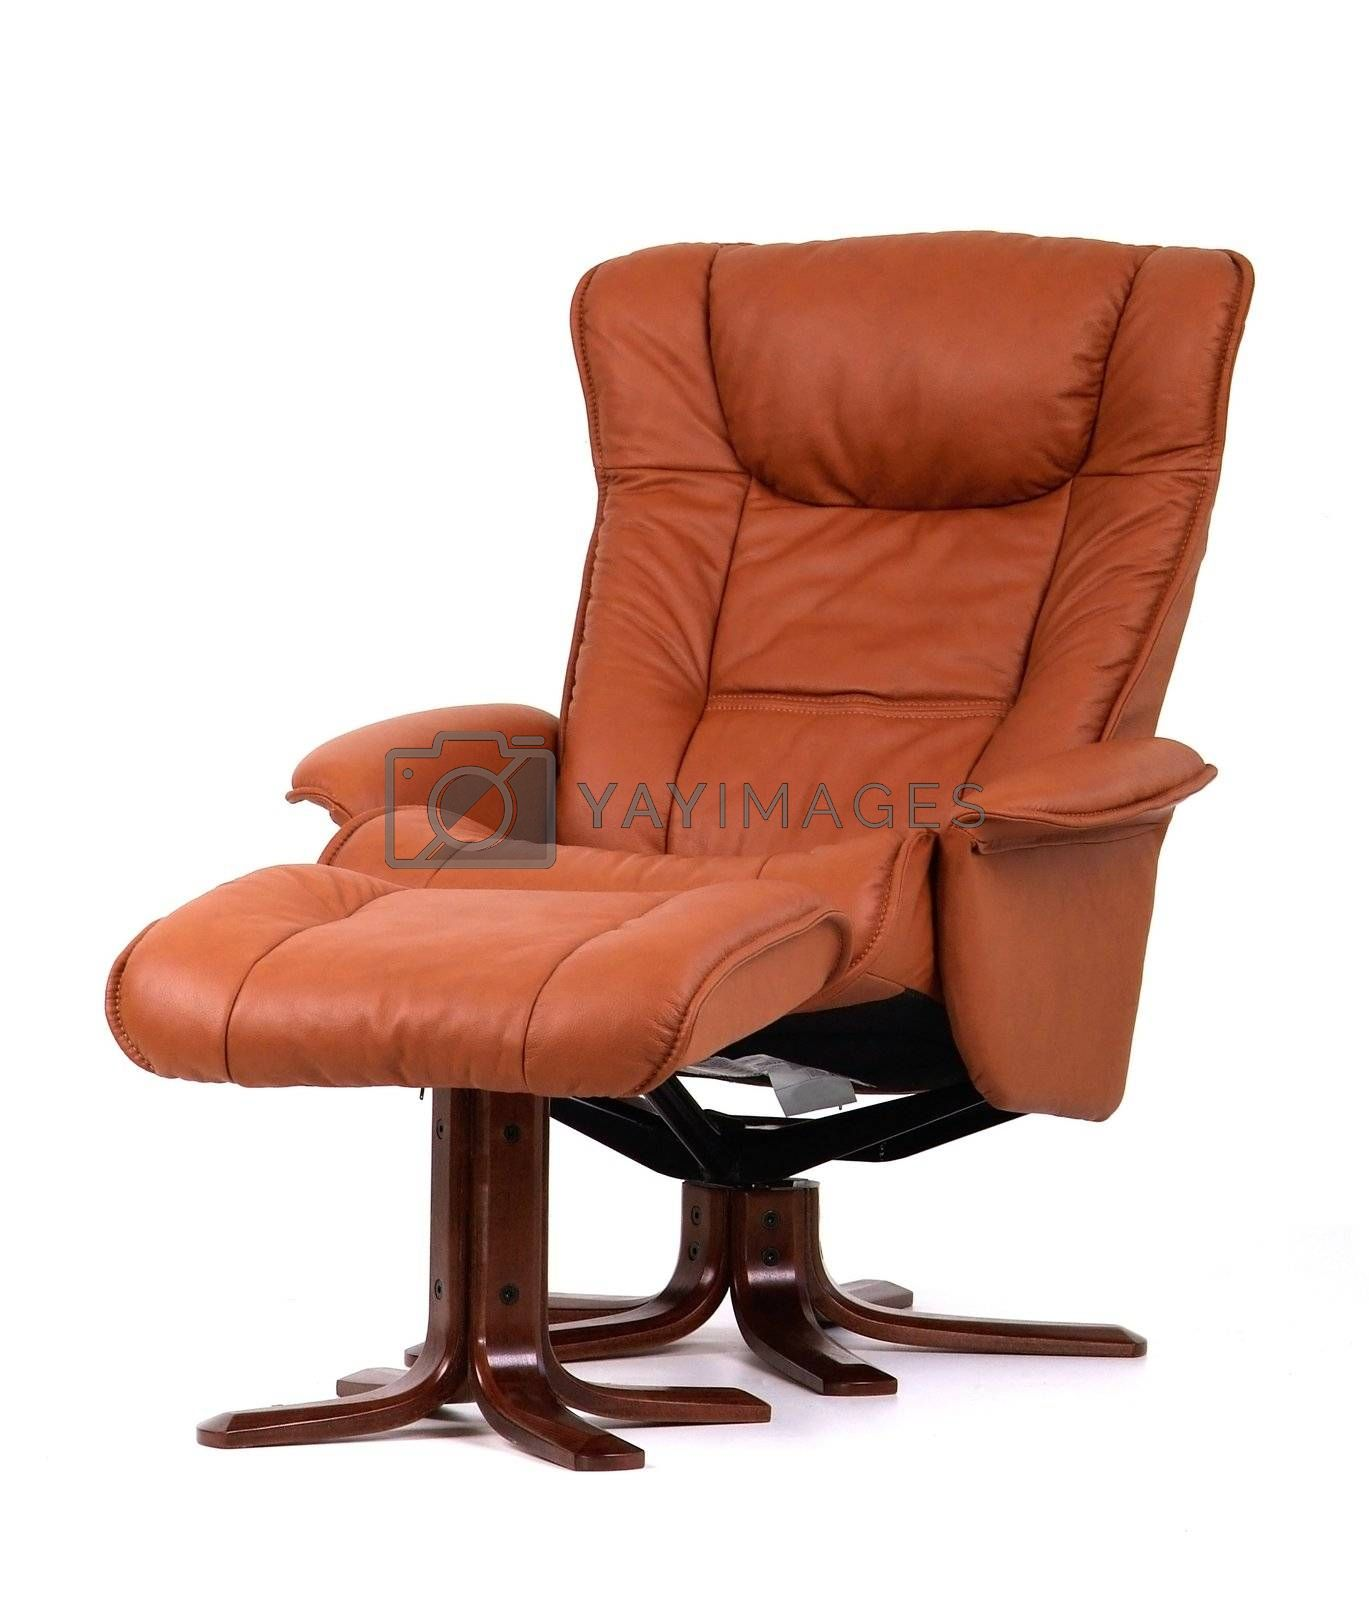 Brown recliner with footstool by epixx